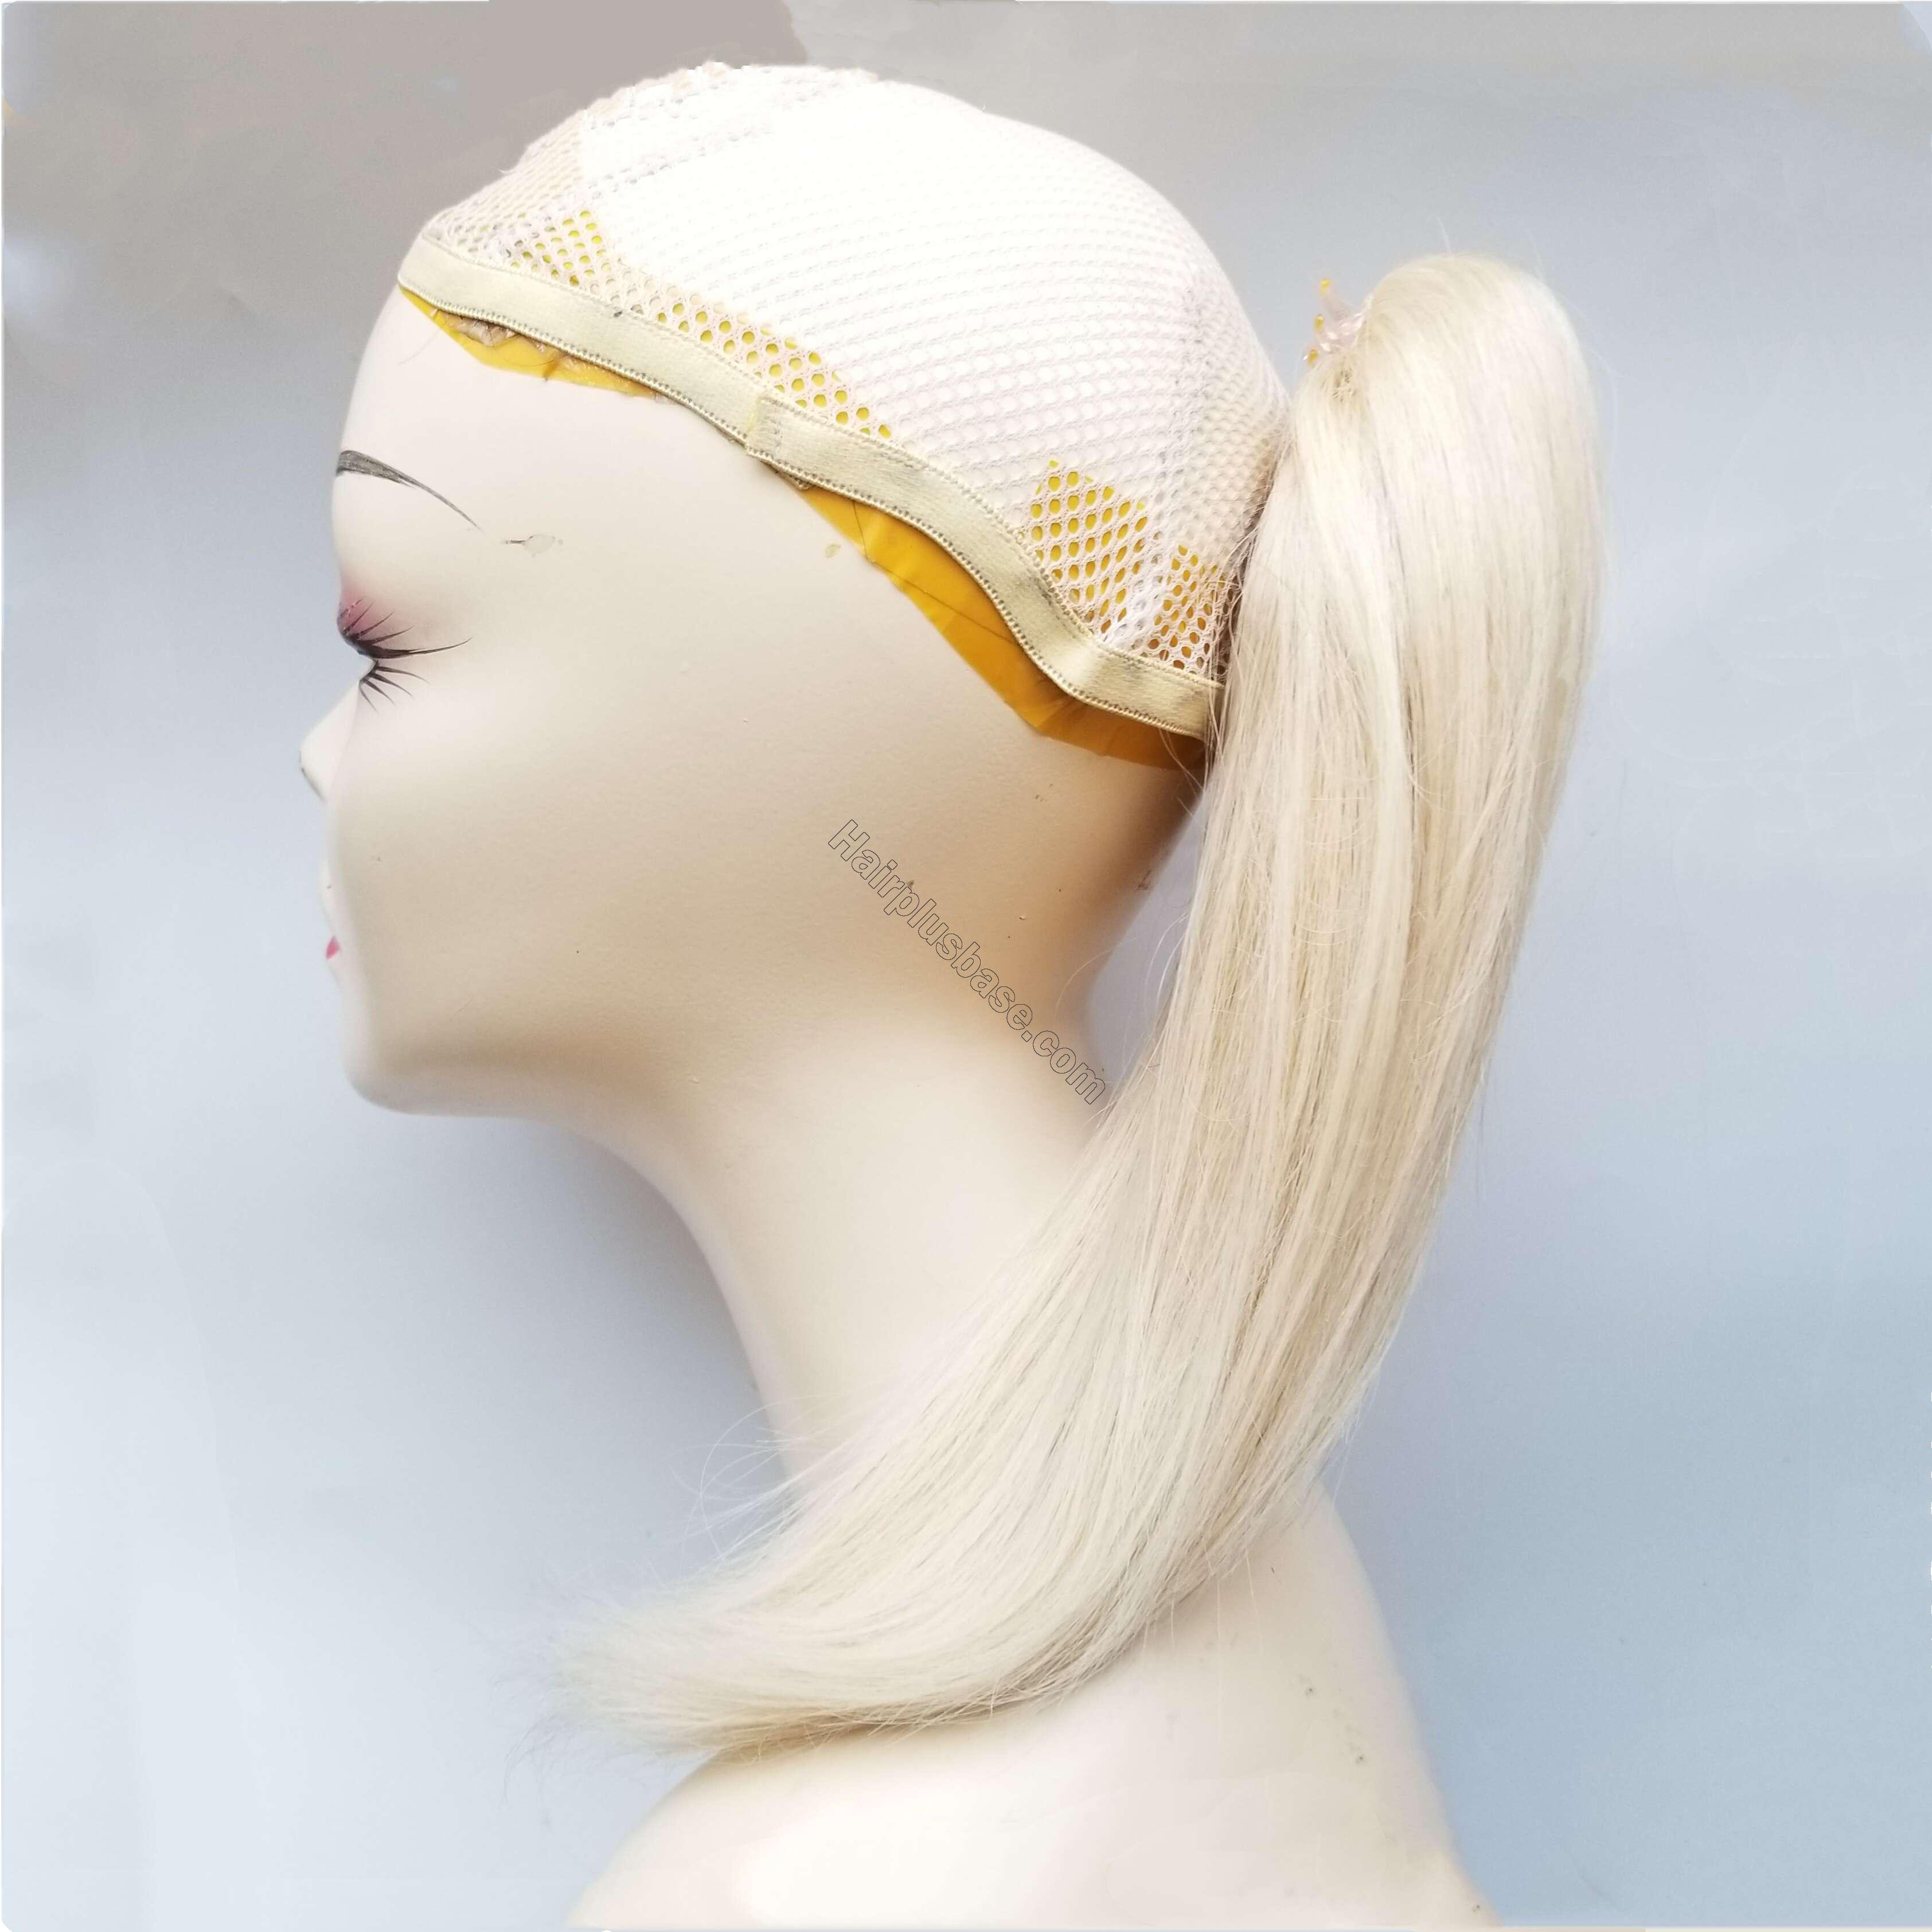 8 - 30 Inch Claw Ponytail Extension Human Hair #613 Bleach Blonde 5